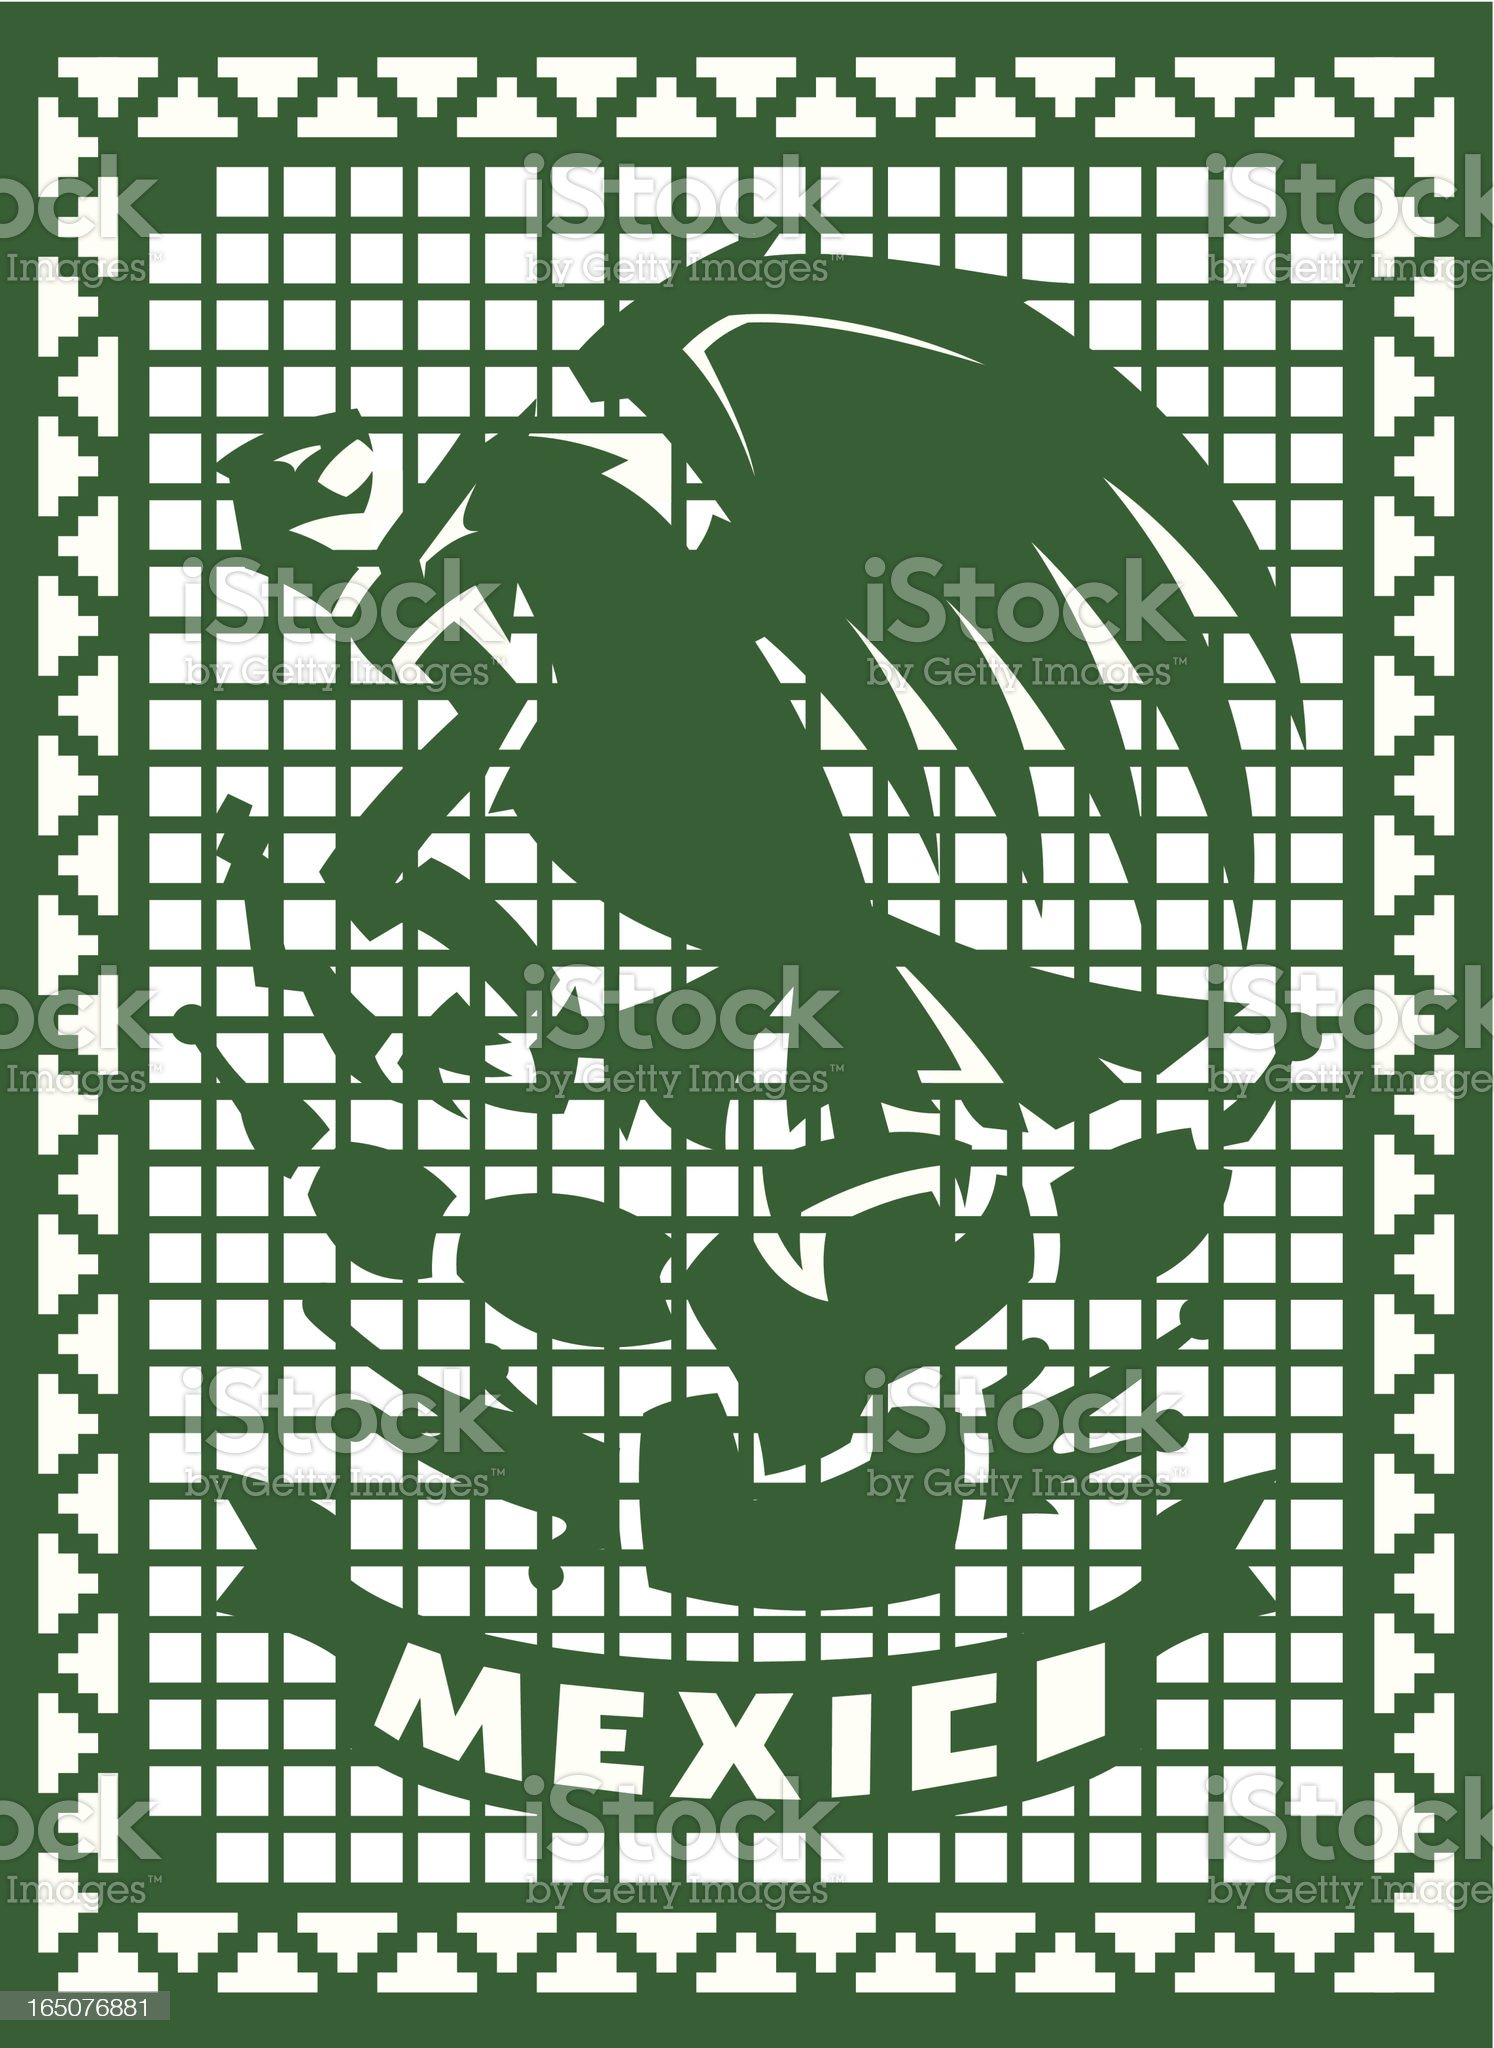 Mexican Celebration Cut out Paper royalty-free stock vector art